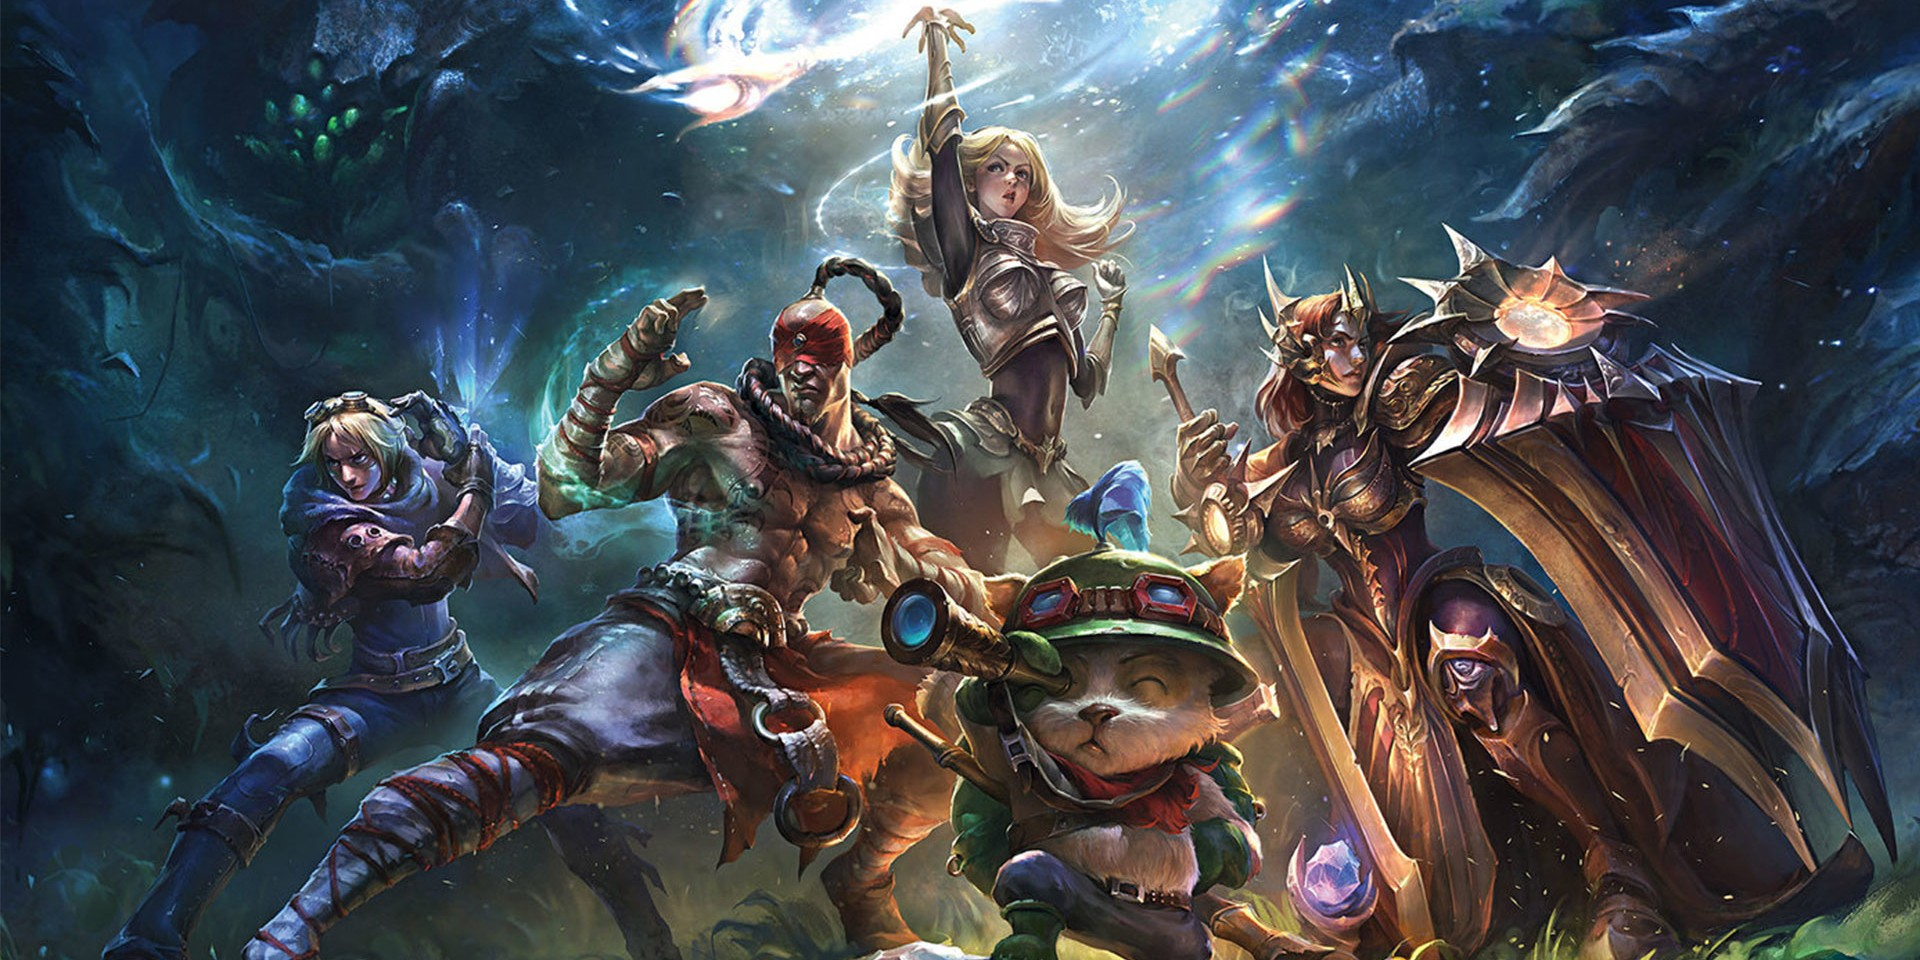 Discover your gaming archetype with League of Legends and Spotify's new digital experience